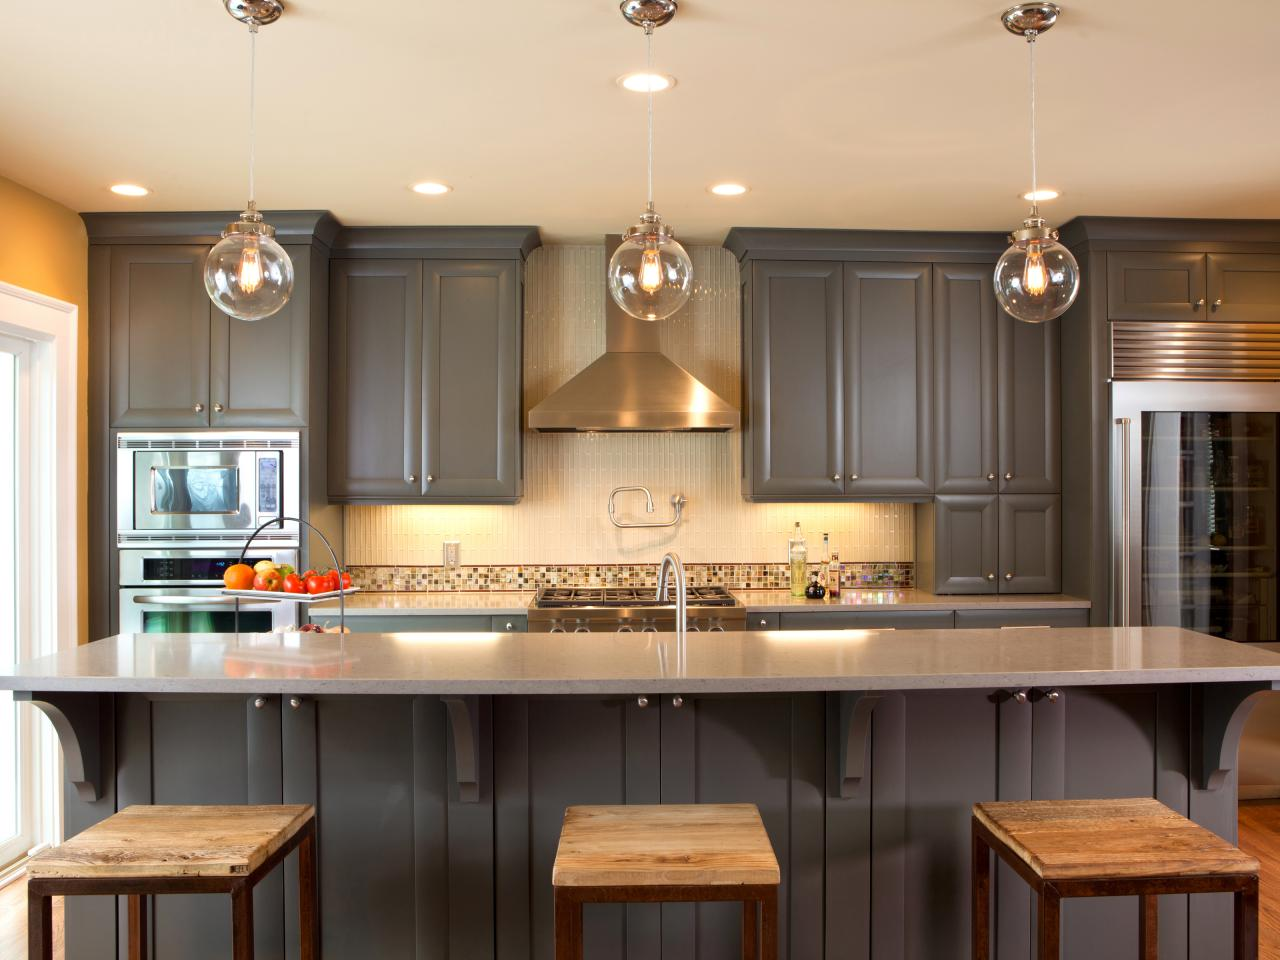 Tips For Painting Kitchen Cabinets DIY Network Blog Made - Best primer for kitchen cabinets